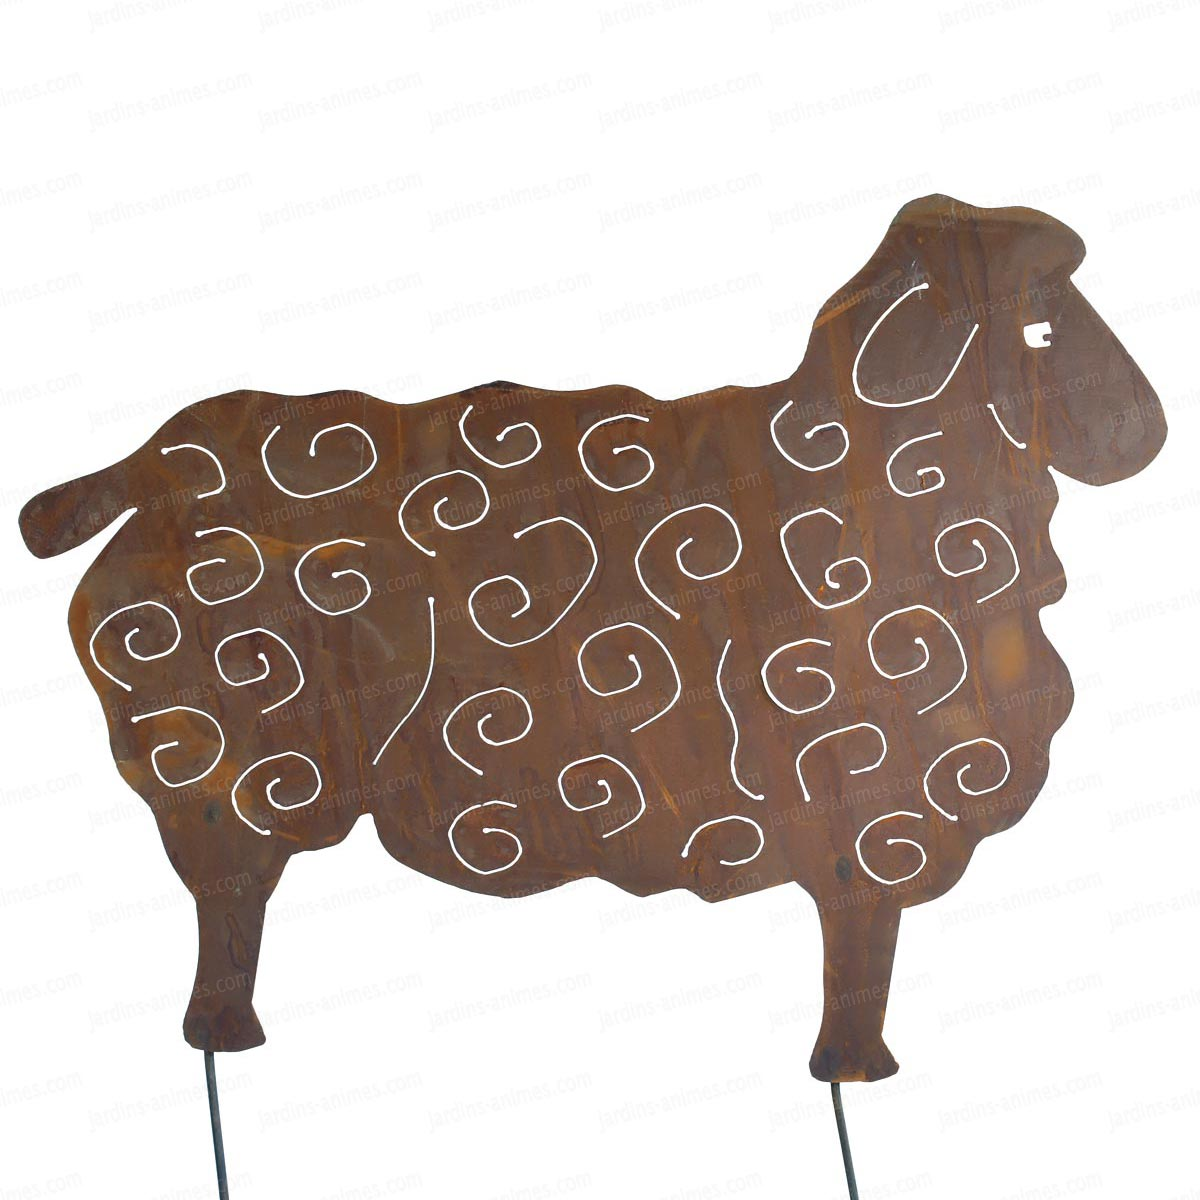 Silhouette mouton au choix d co de jardin en m tal for Decoration de jardin en metal